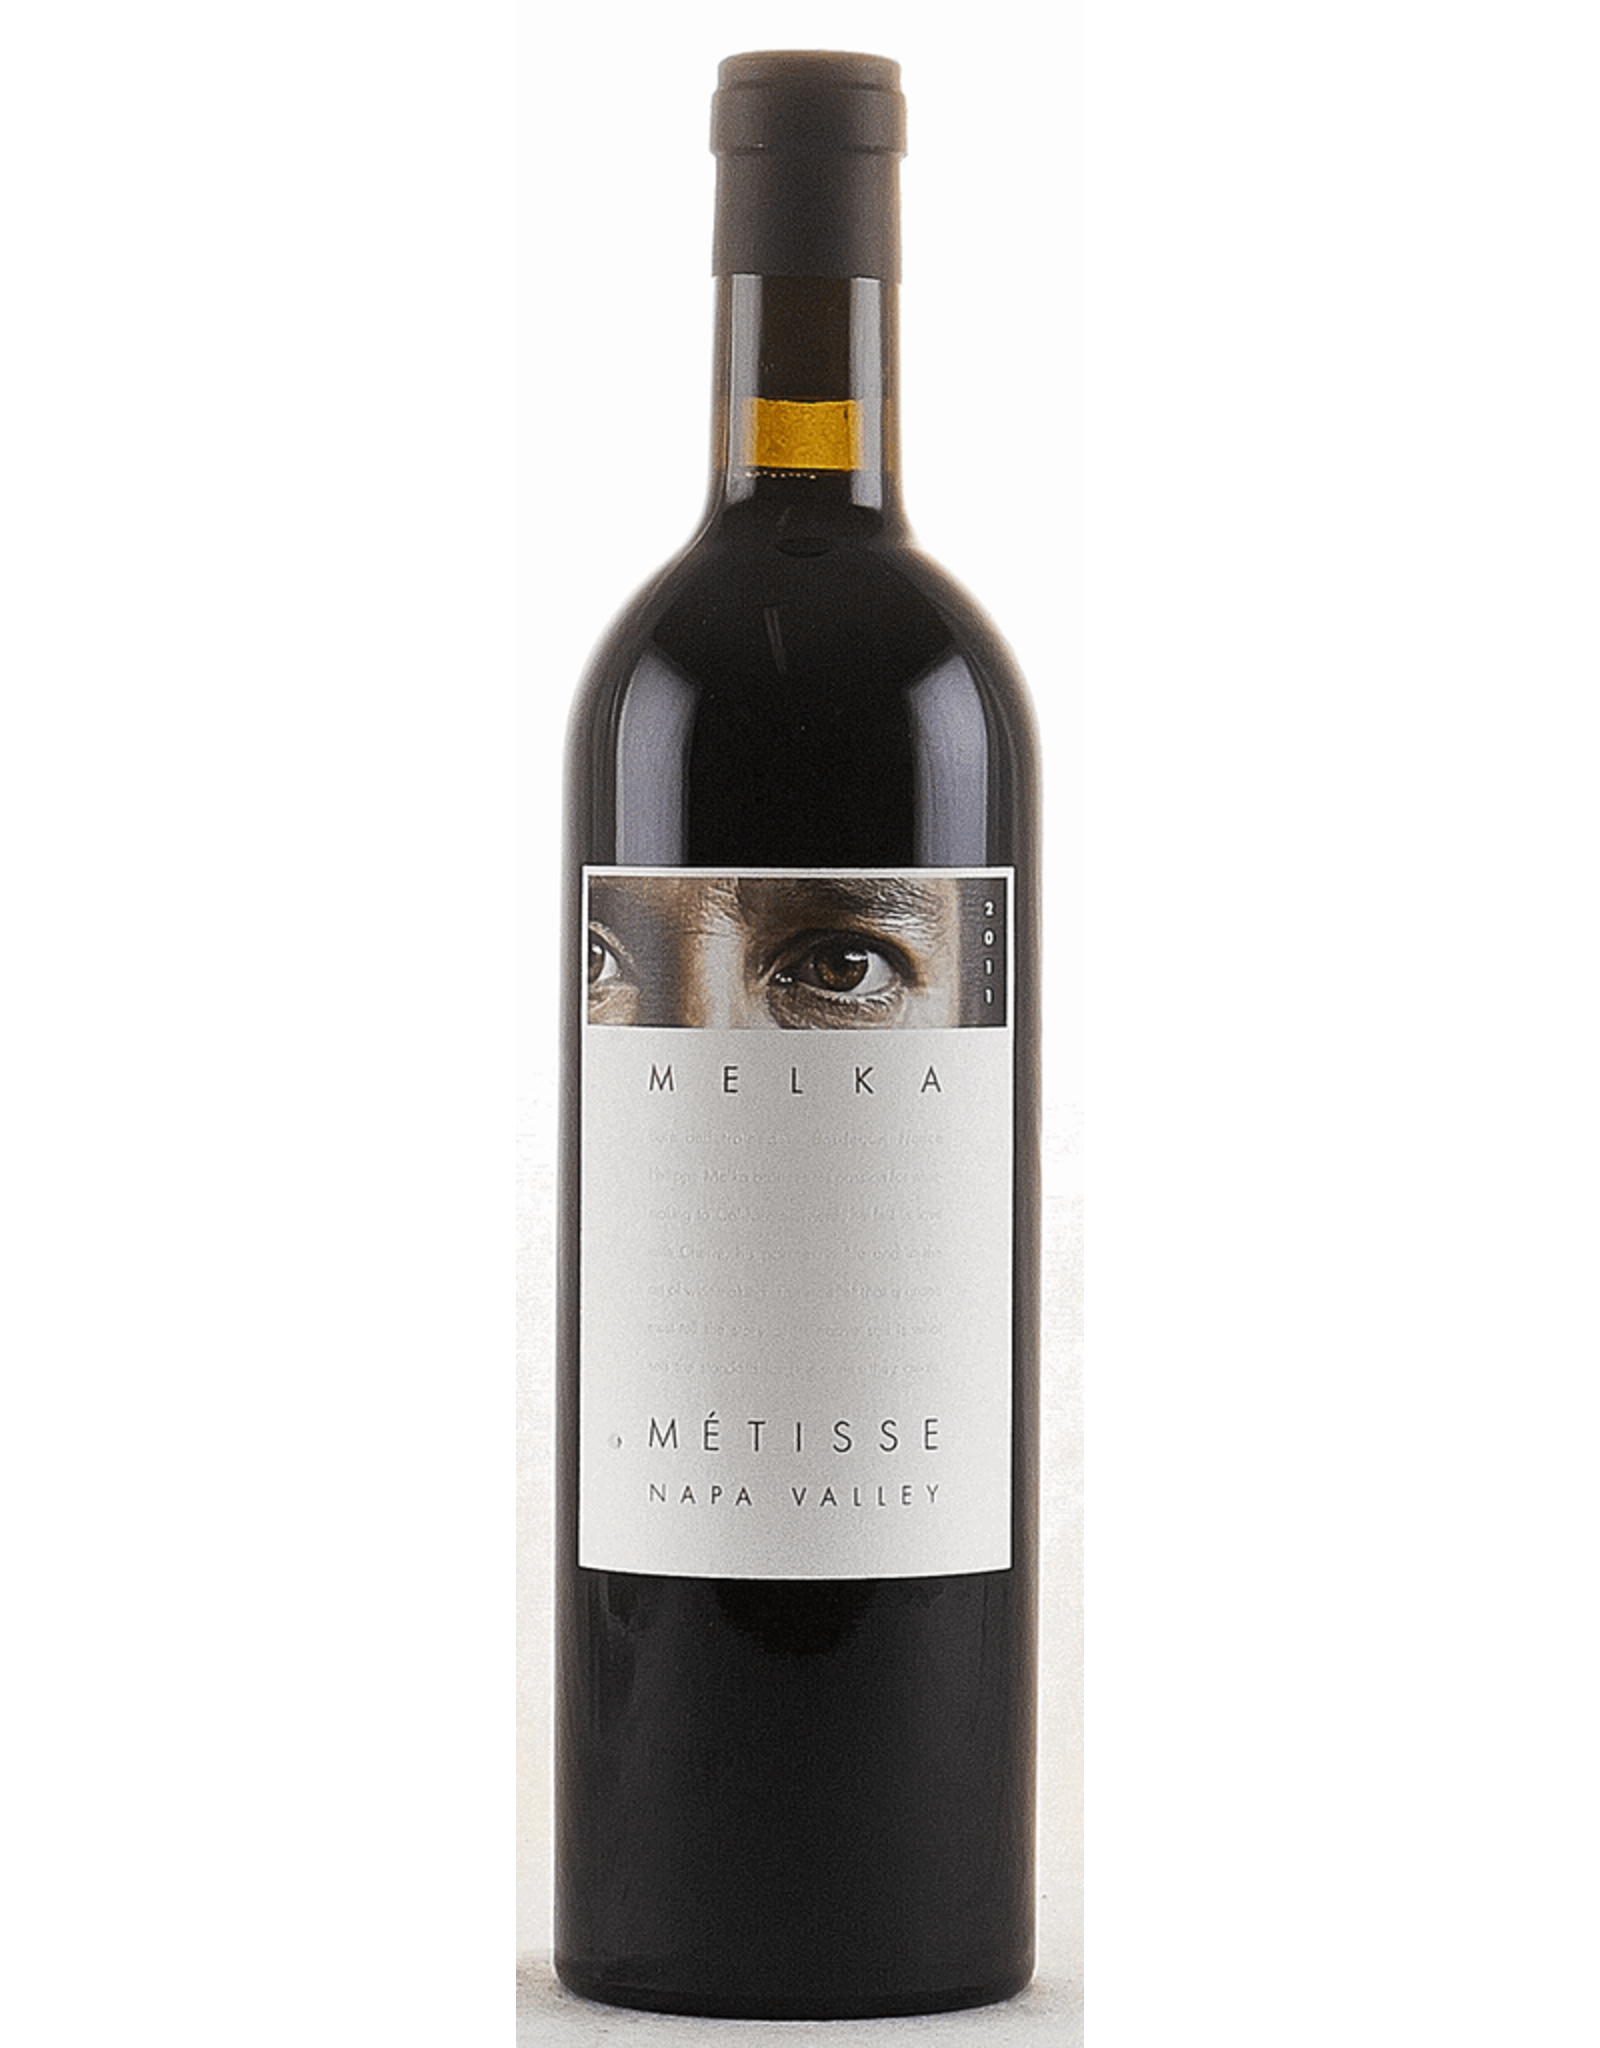 Red Wine 2012, Melka Metisse Jumping Goat, Red Bordeaux Blend, St. Helena, Napa Valley, California, 14.9% Alc, CT95, WS94